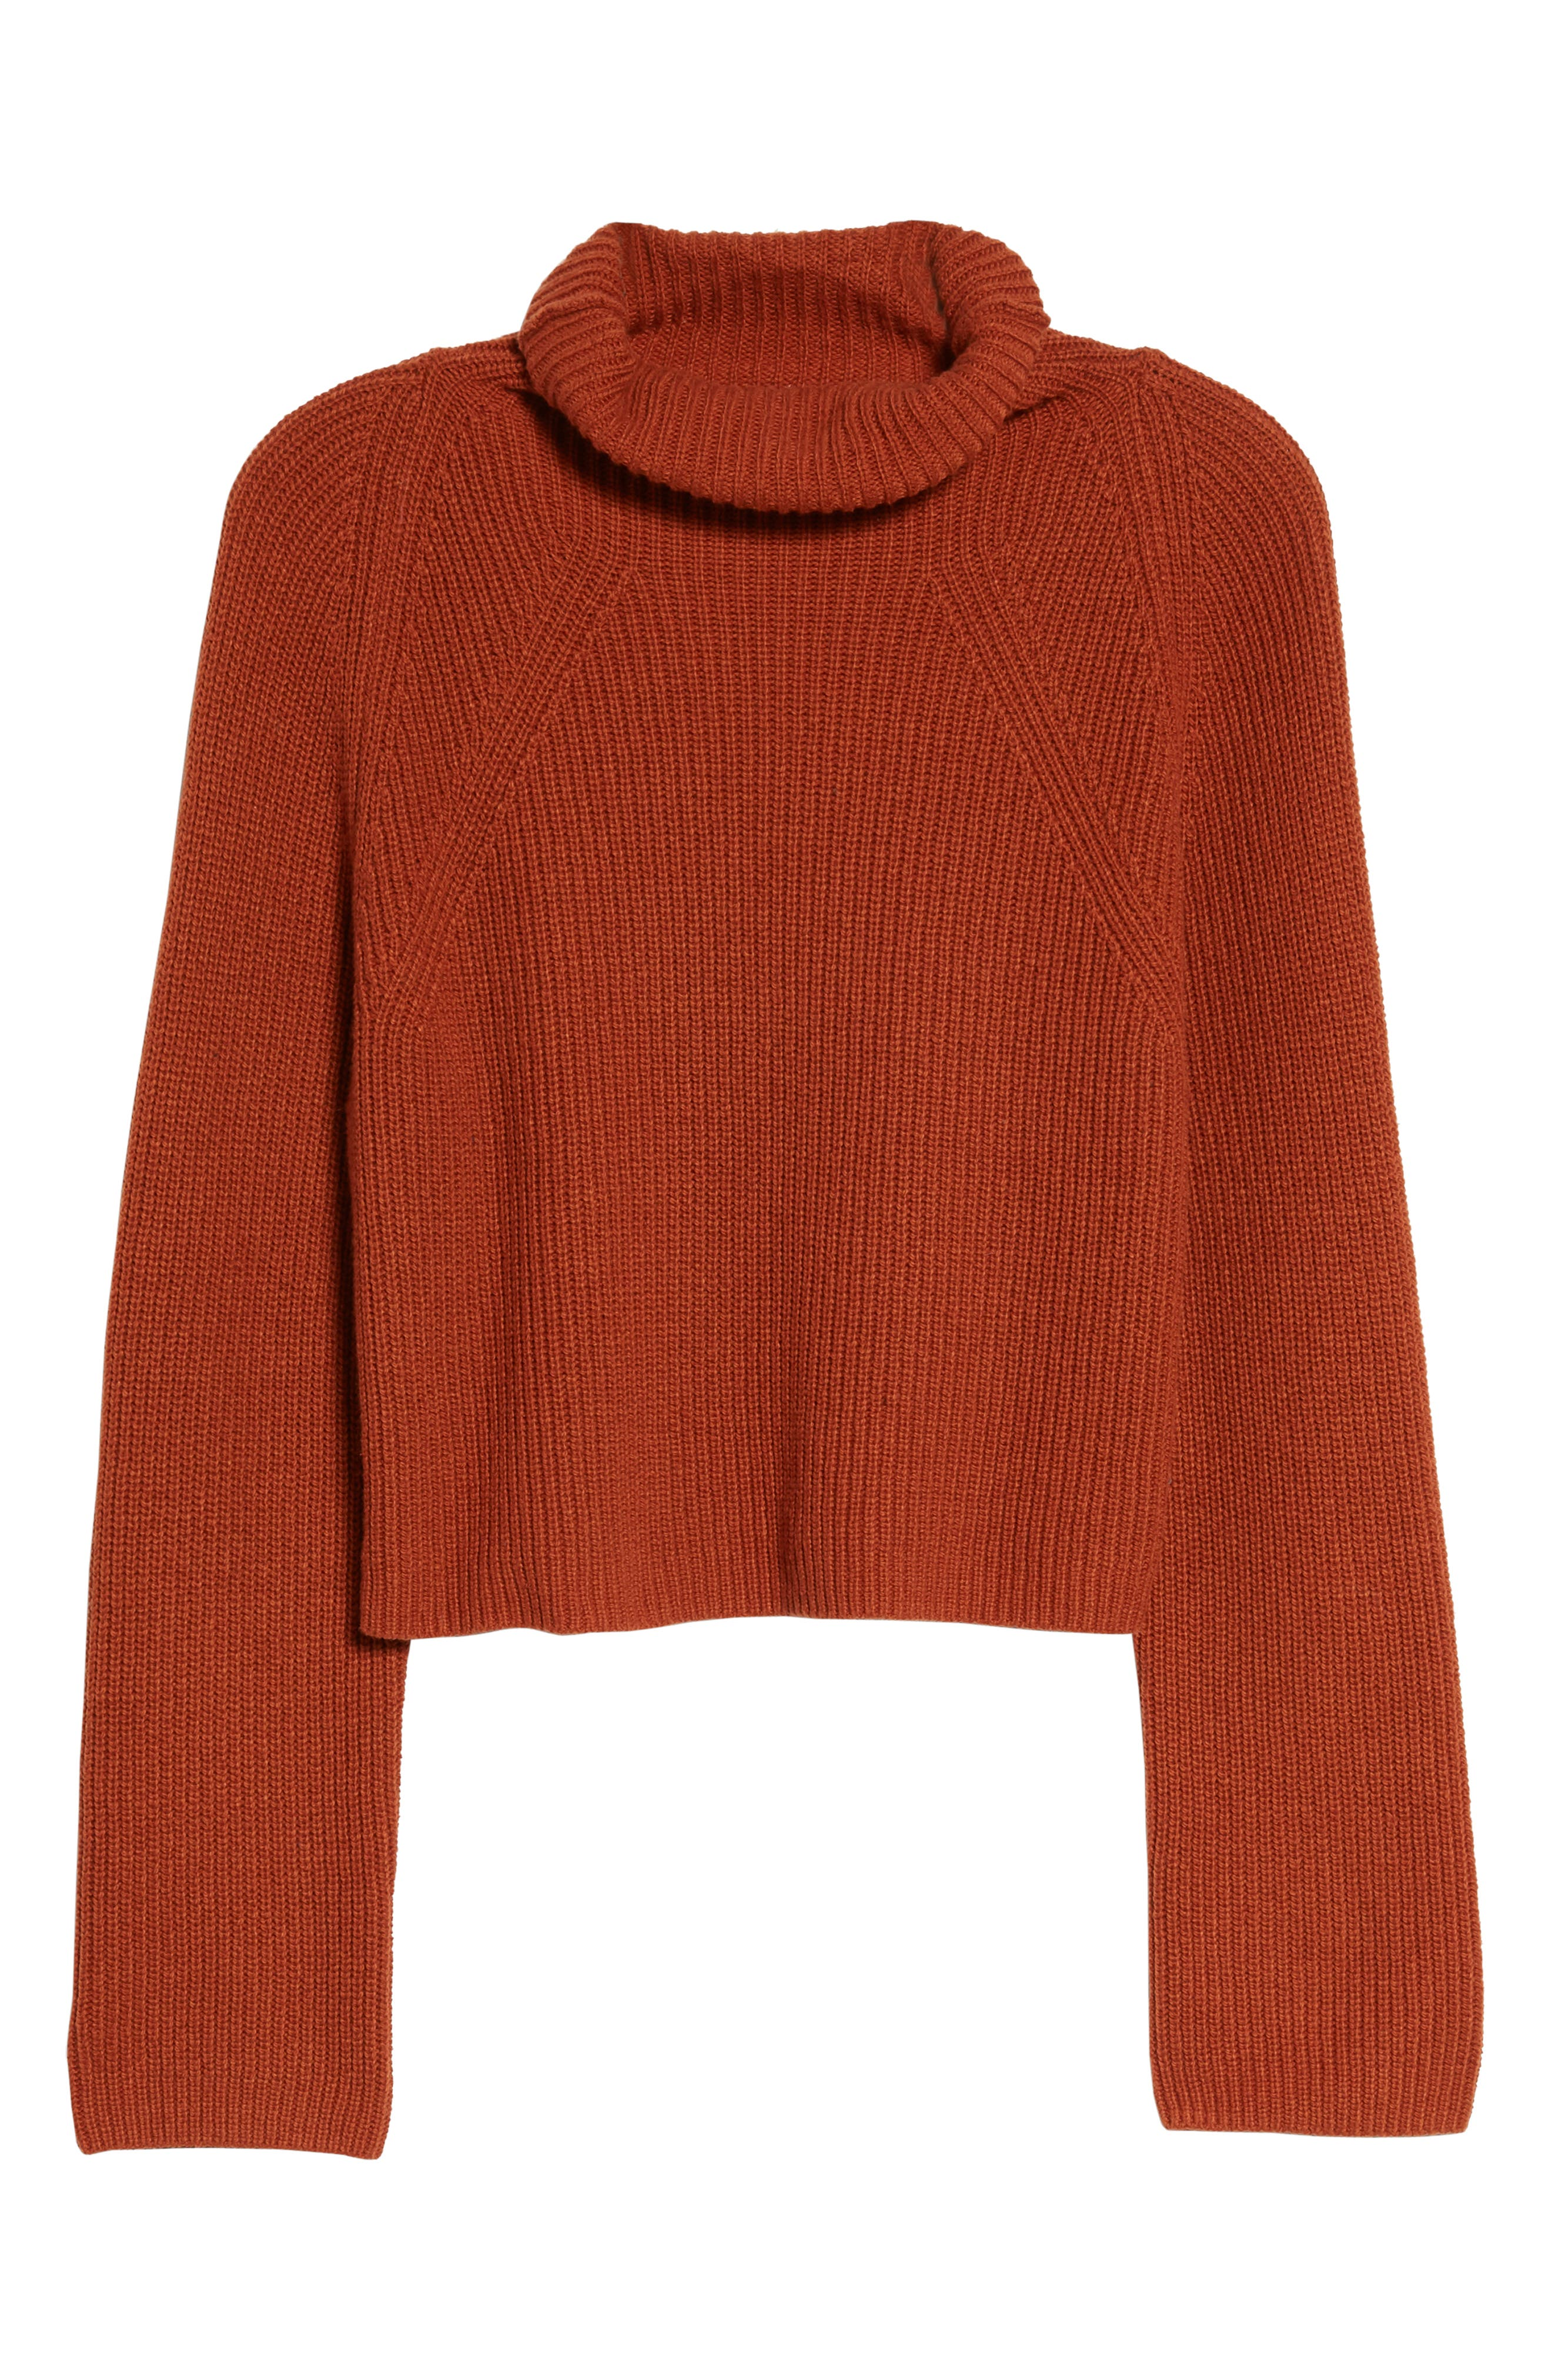 LEITH, Transfer Stitch Turtleneck Sweater, Alternate thumbnail 6, color, 210